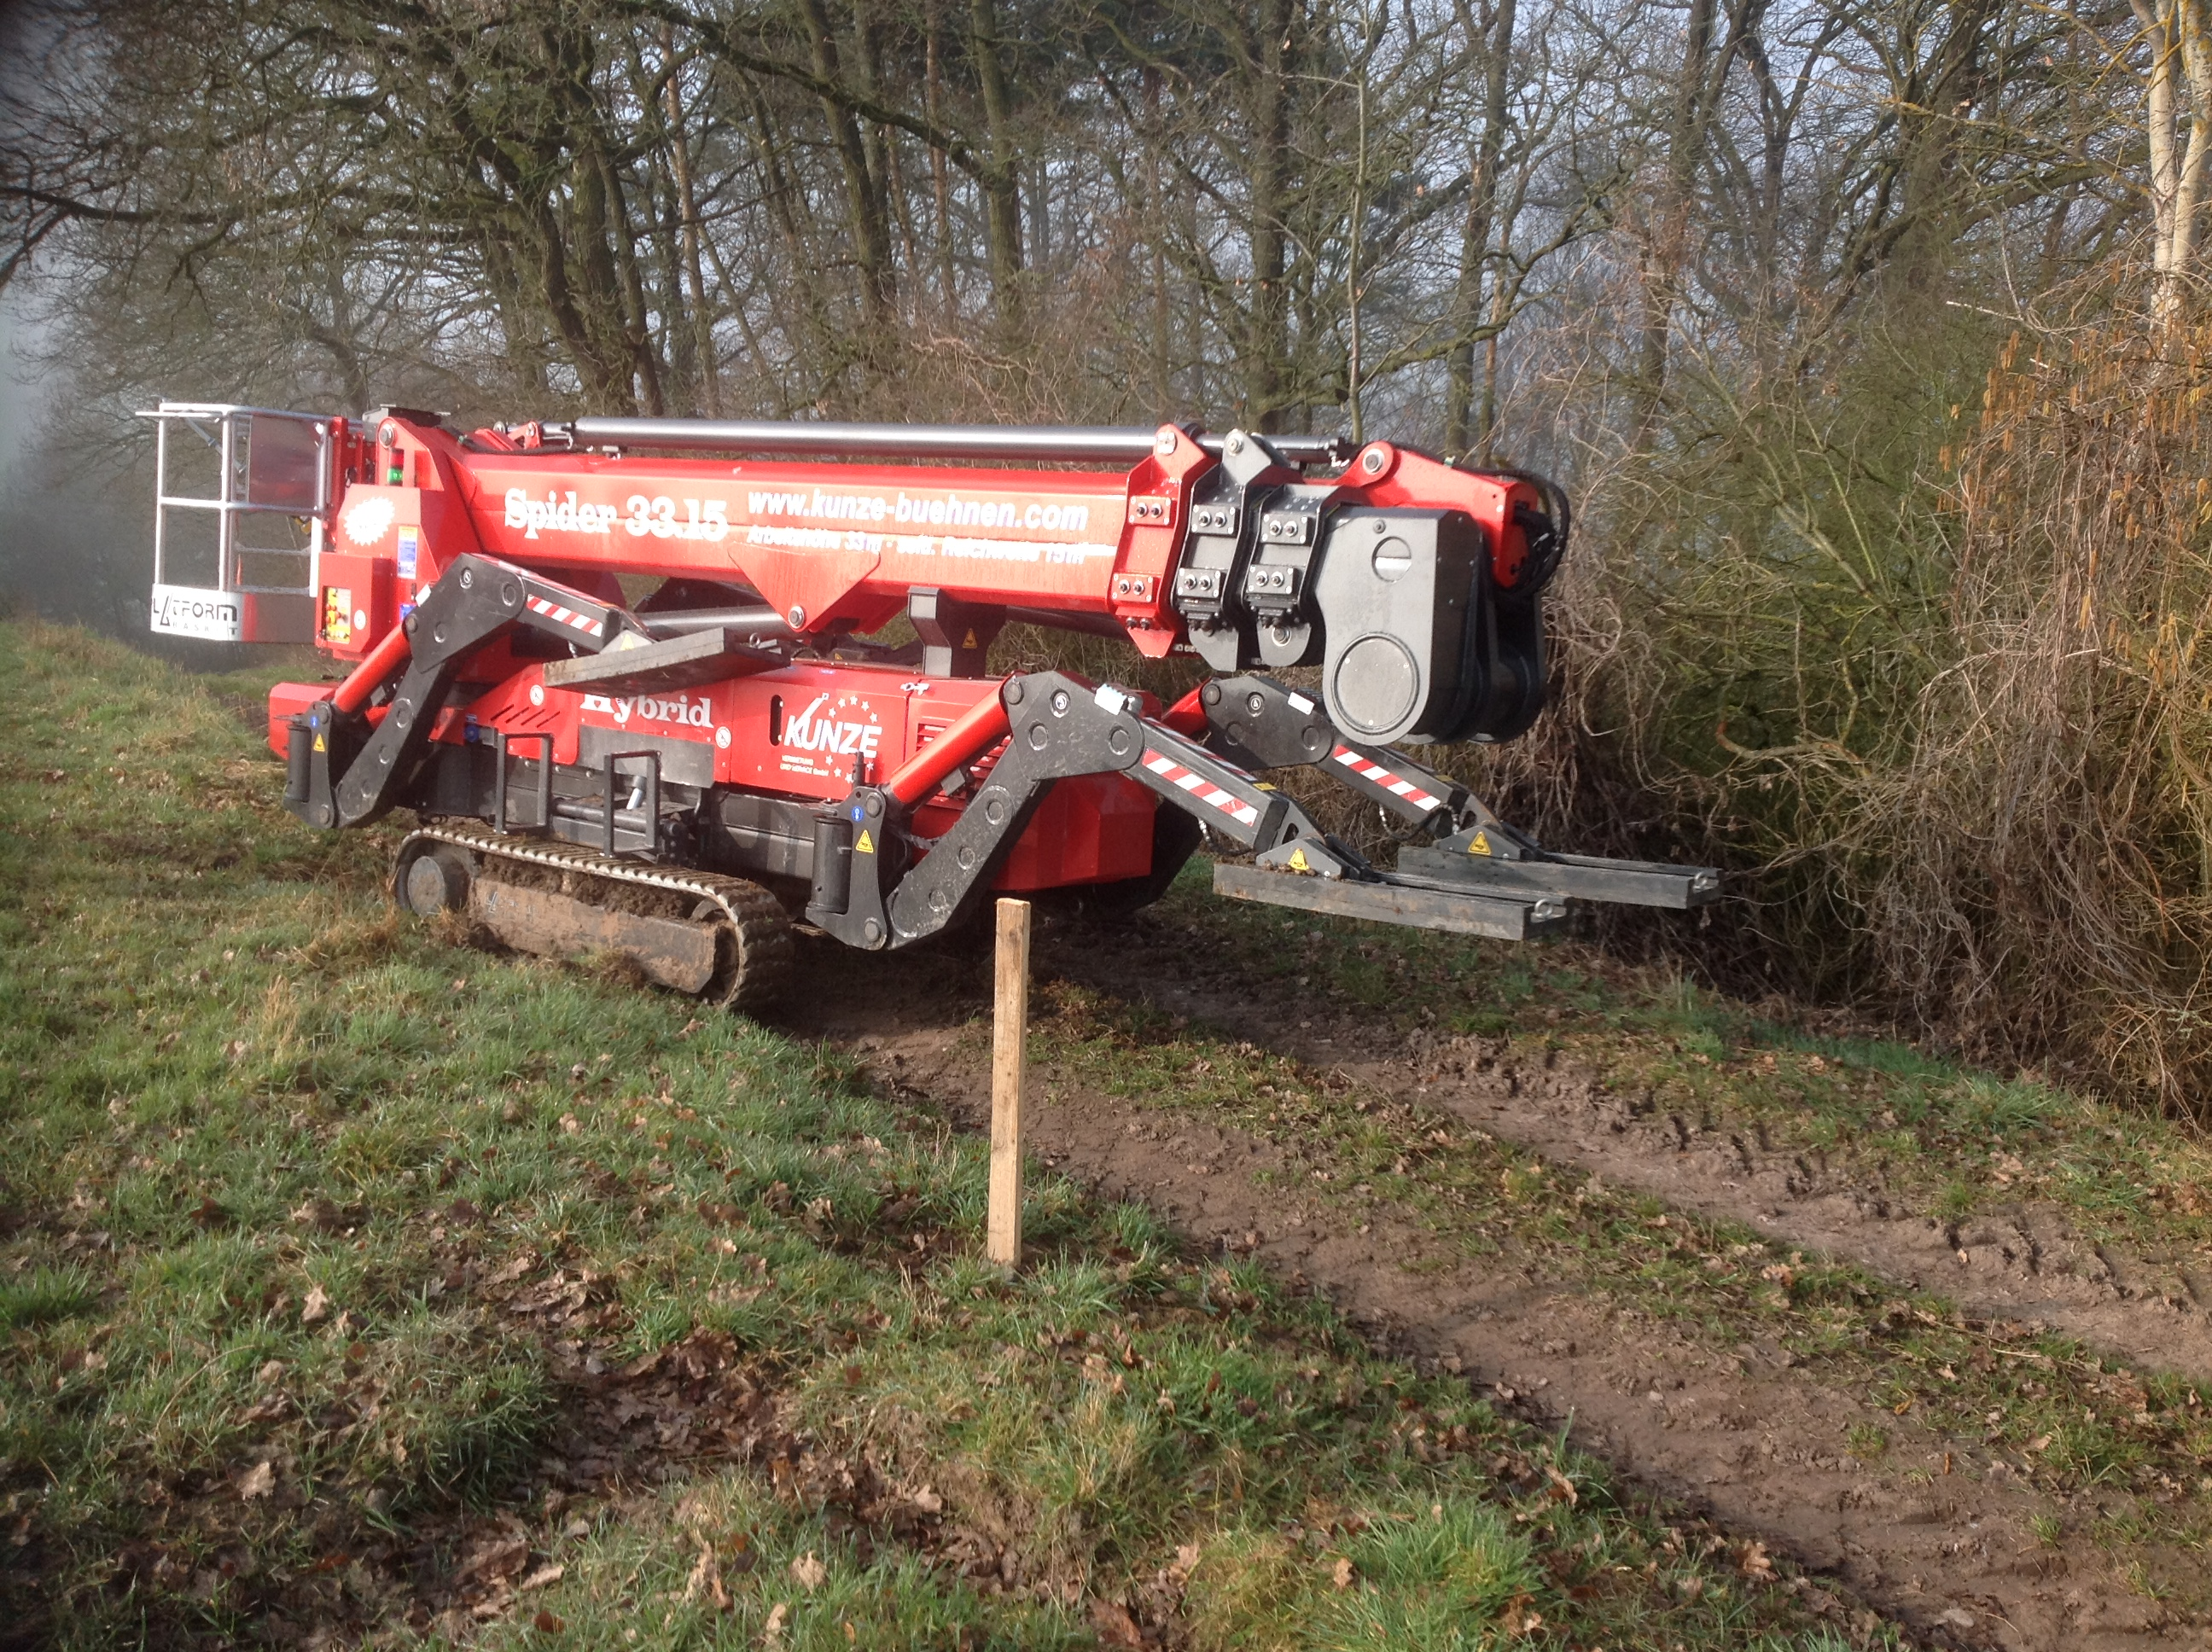 Forestry access Platform Spider 33.15 en route to tree work